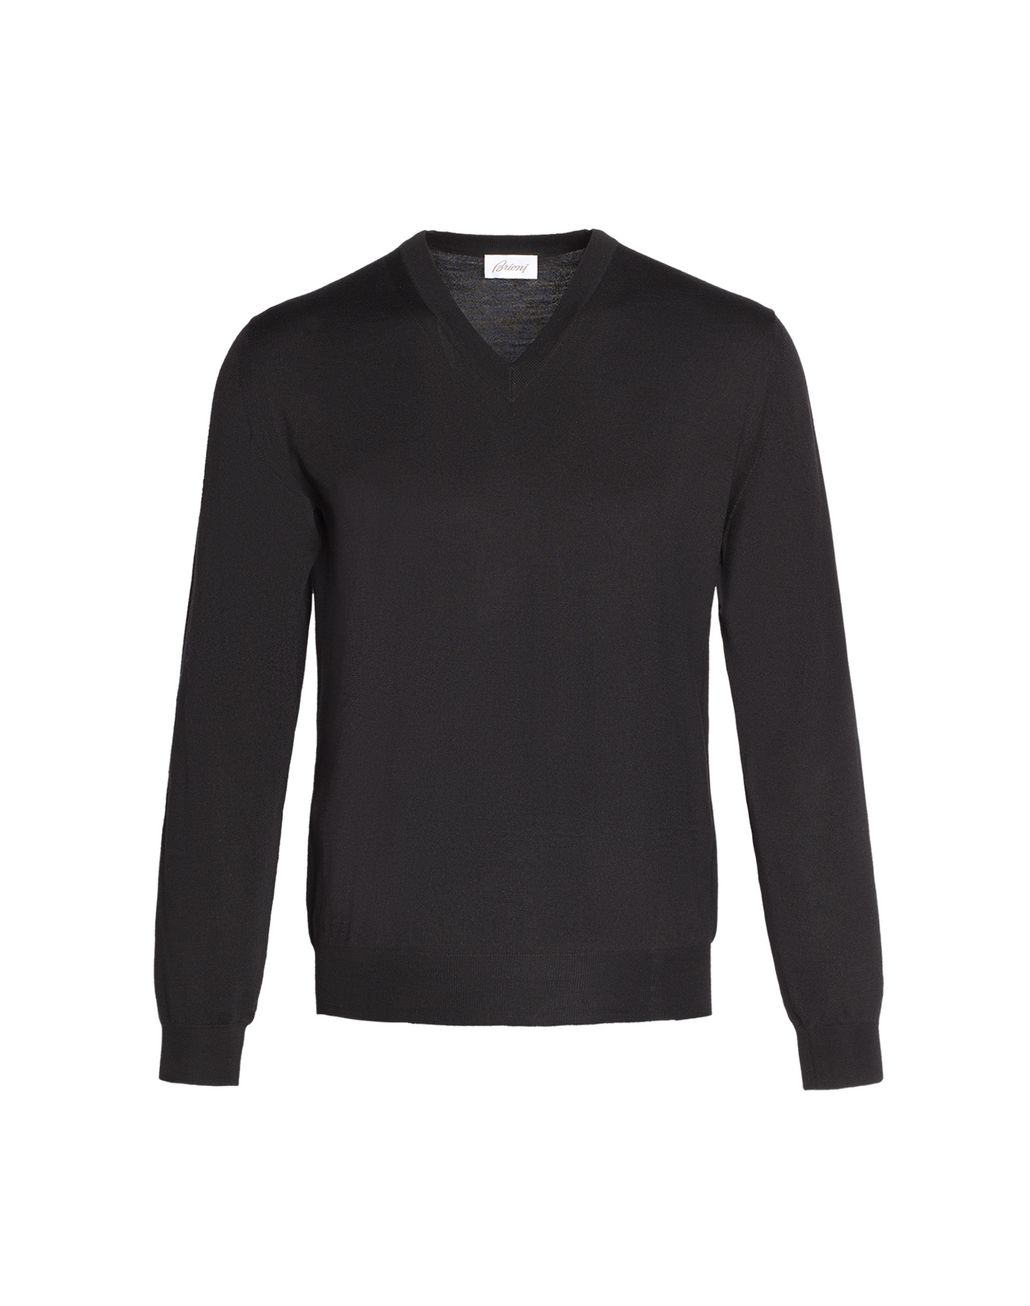 BRIONI  'Essential' Black V-Neck Sweater Knitwear Man f